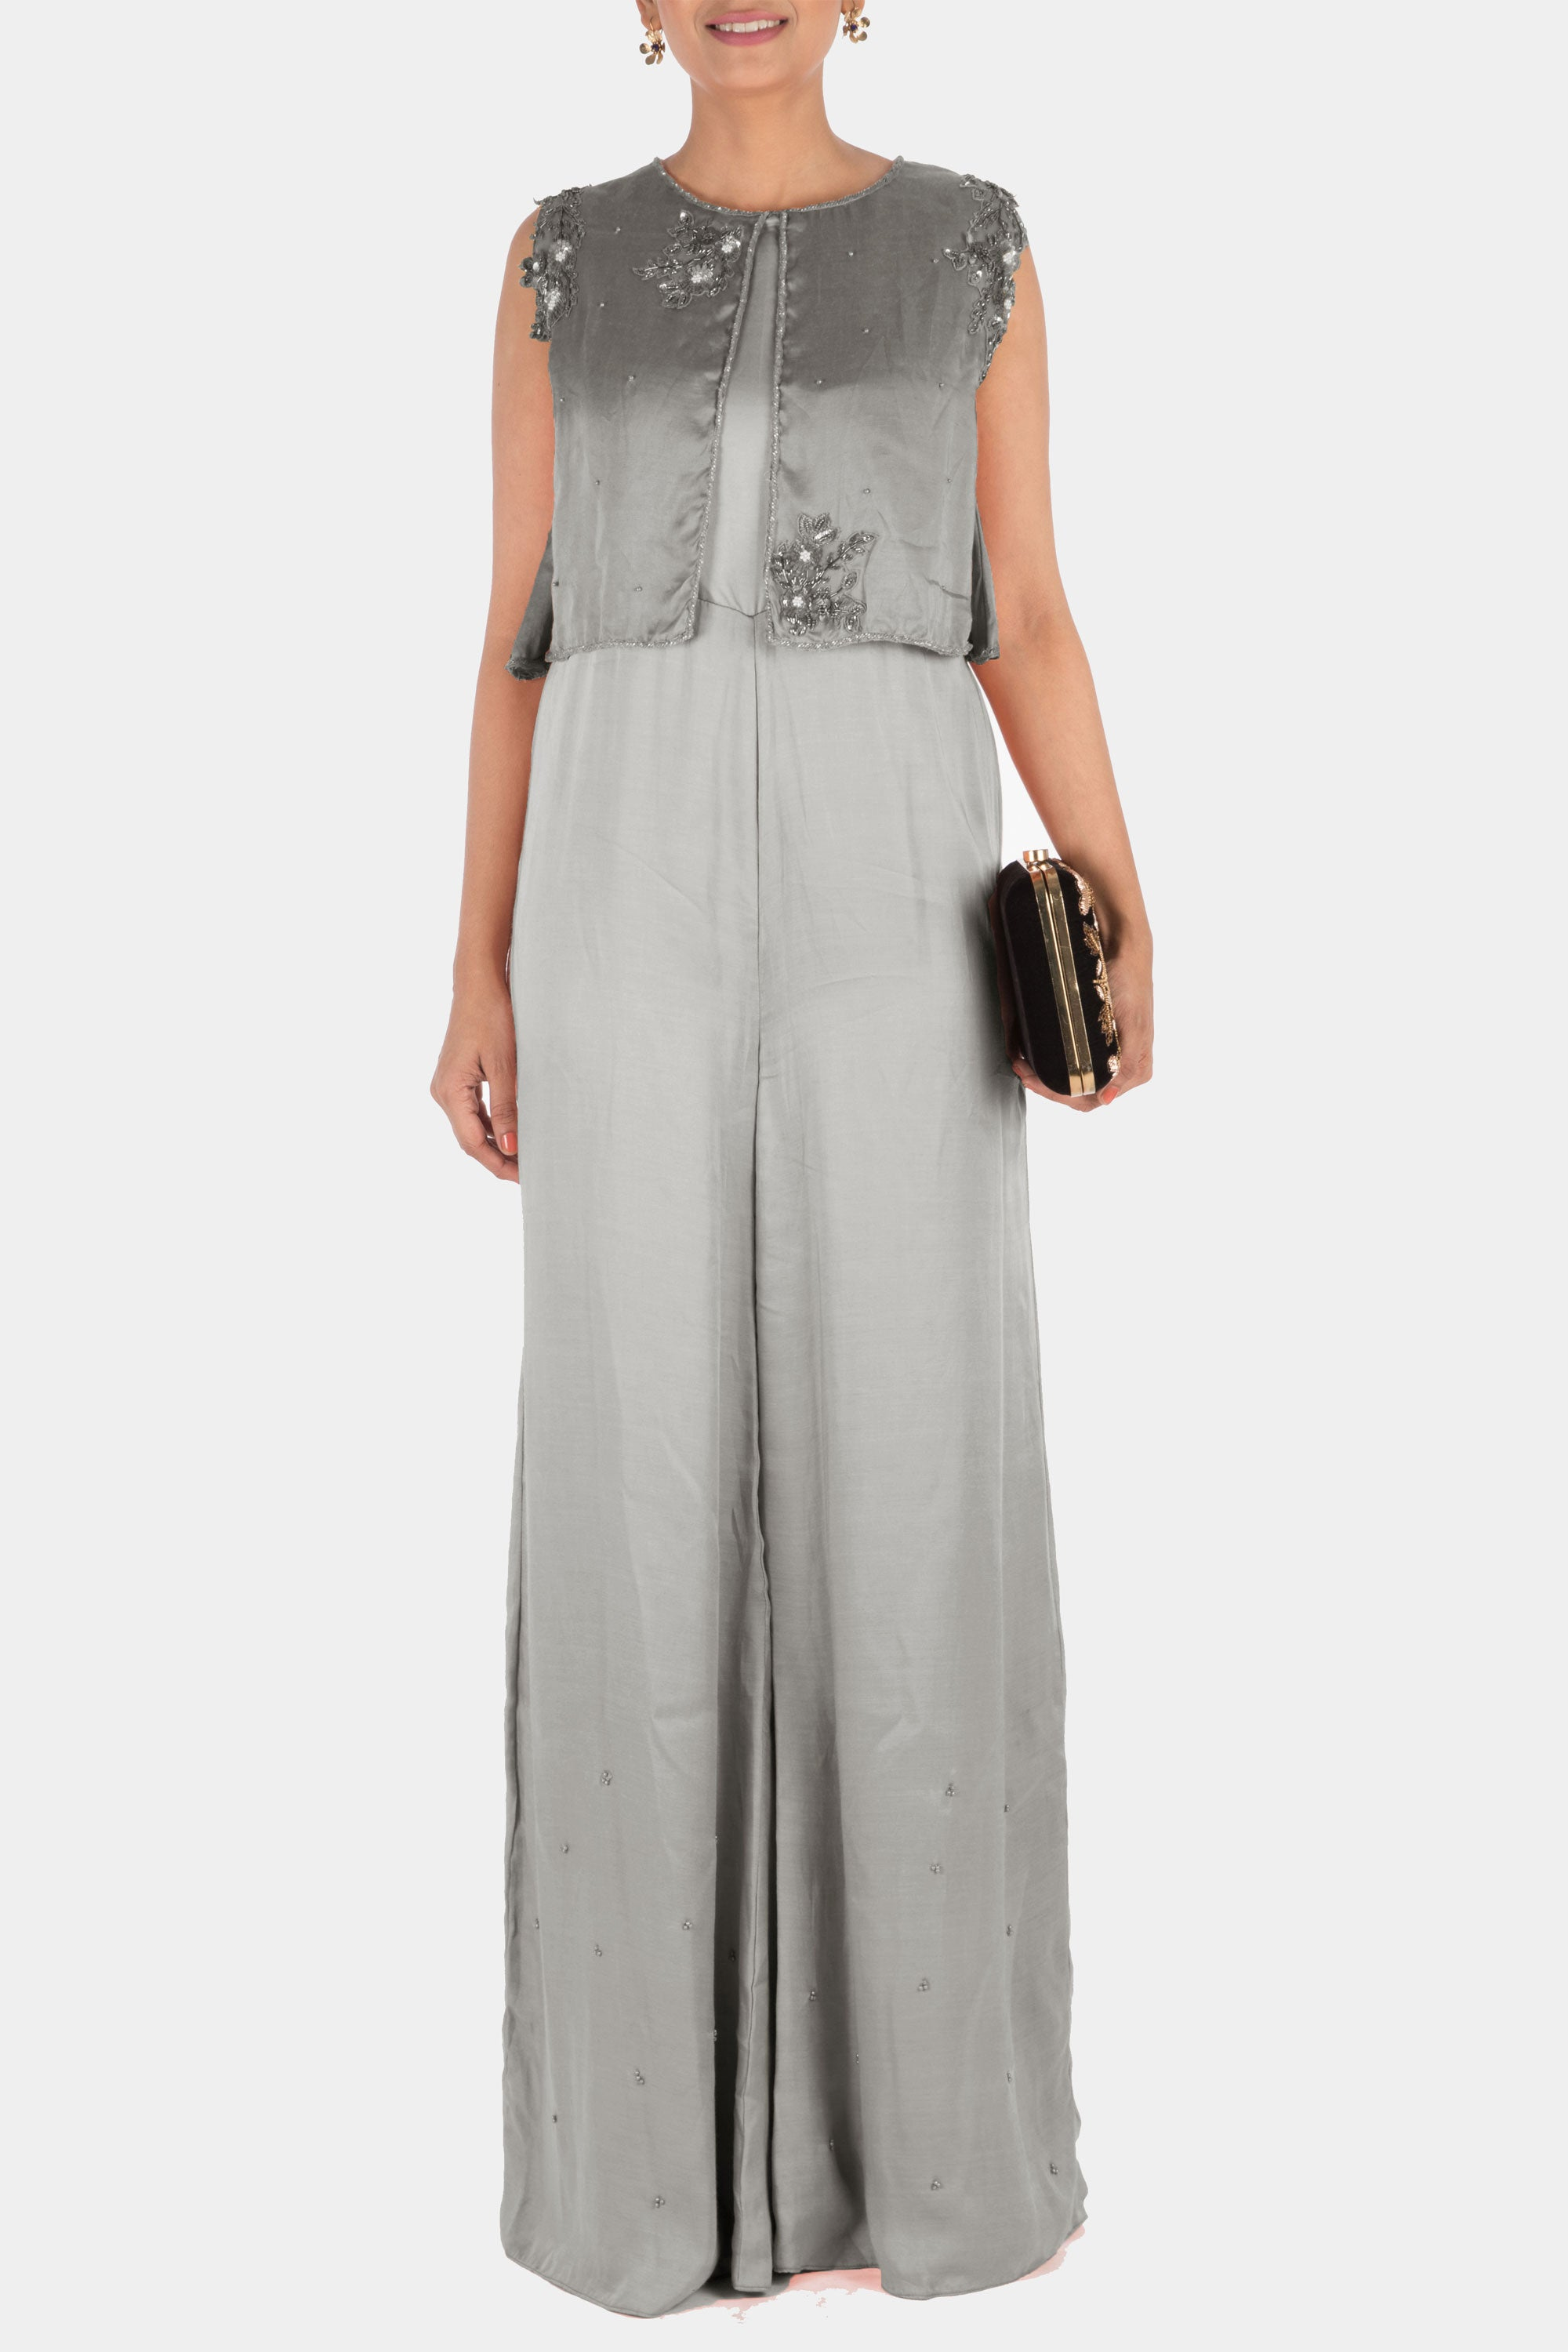 Hand Embroidered Grey Jumpsuit With Attach Jacket Front